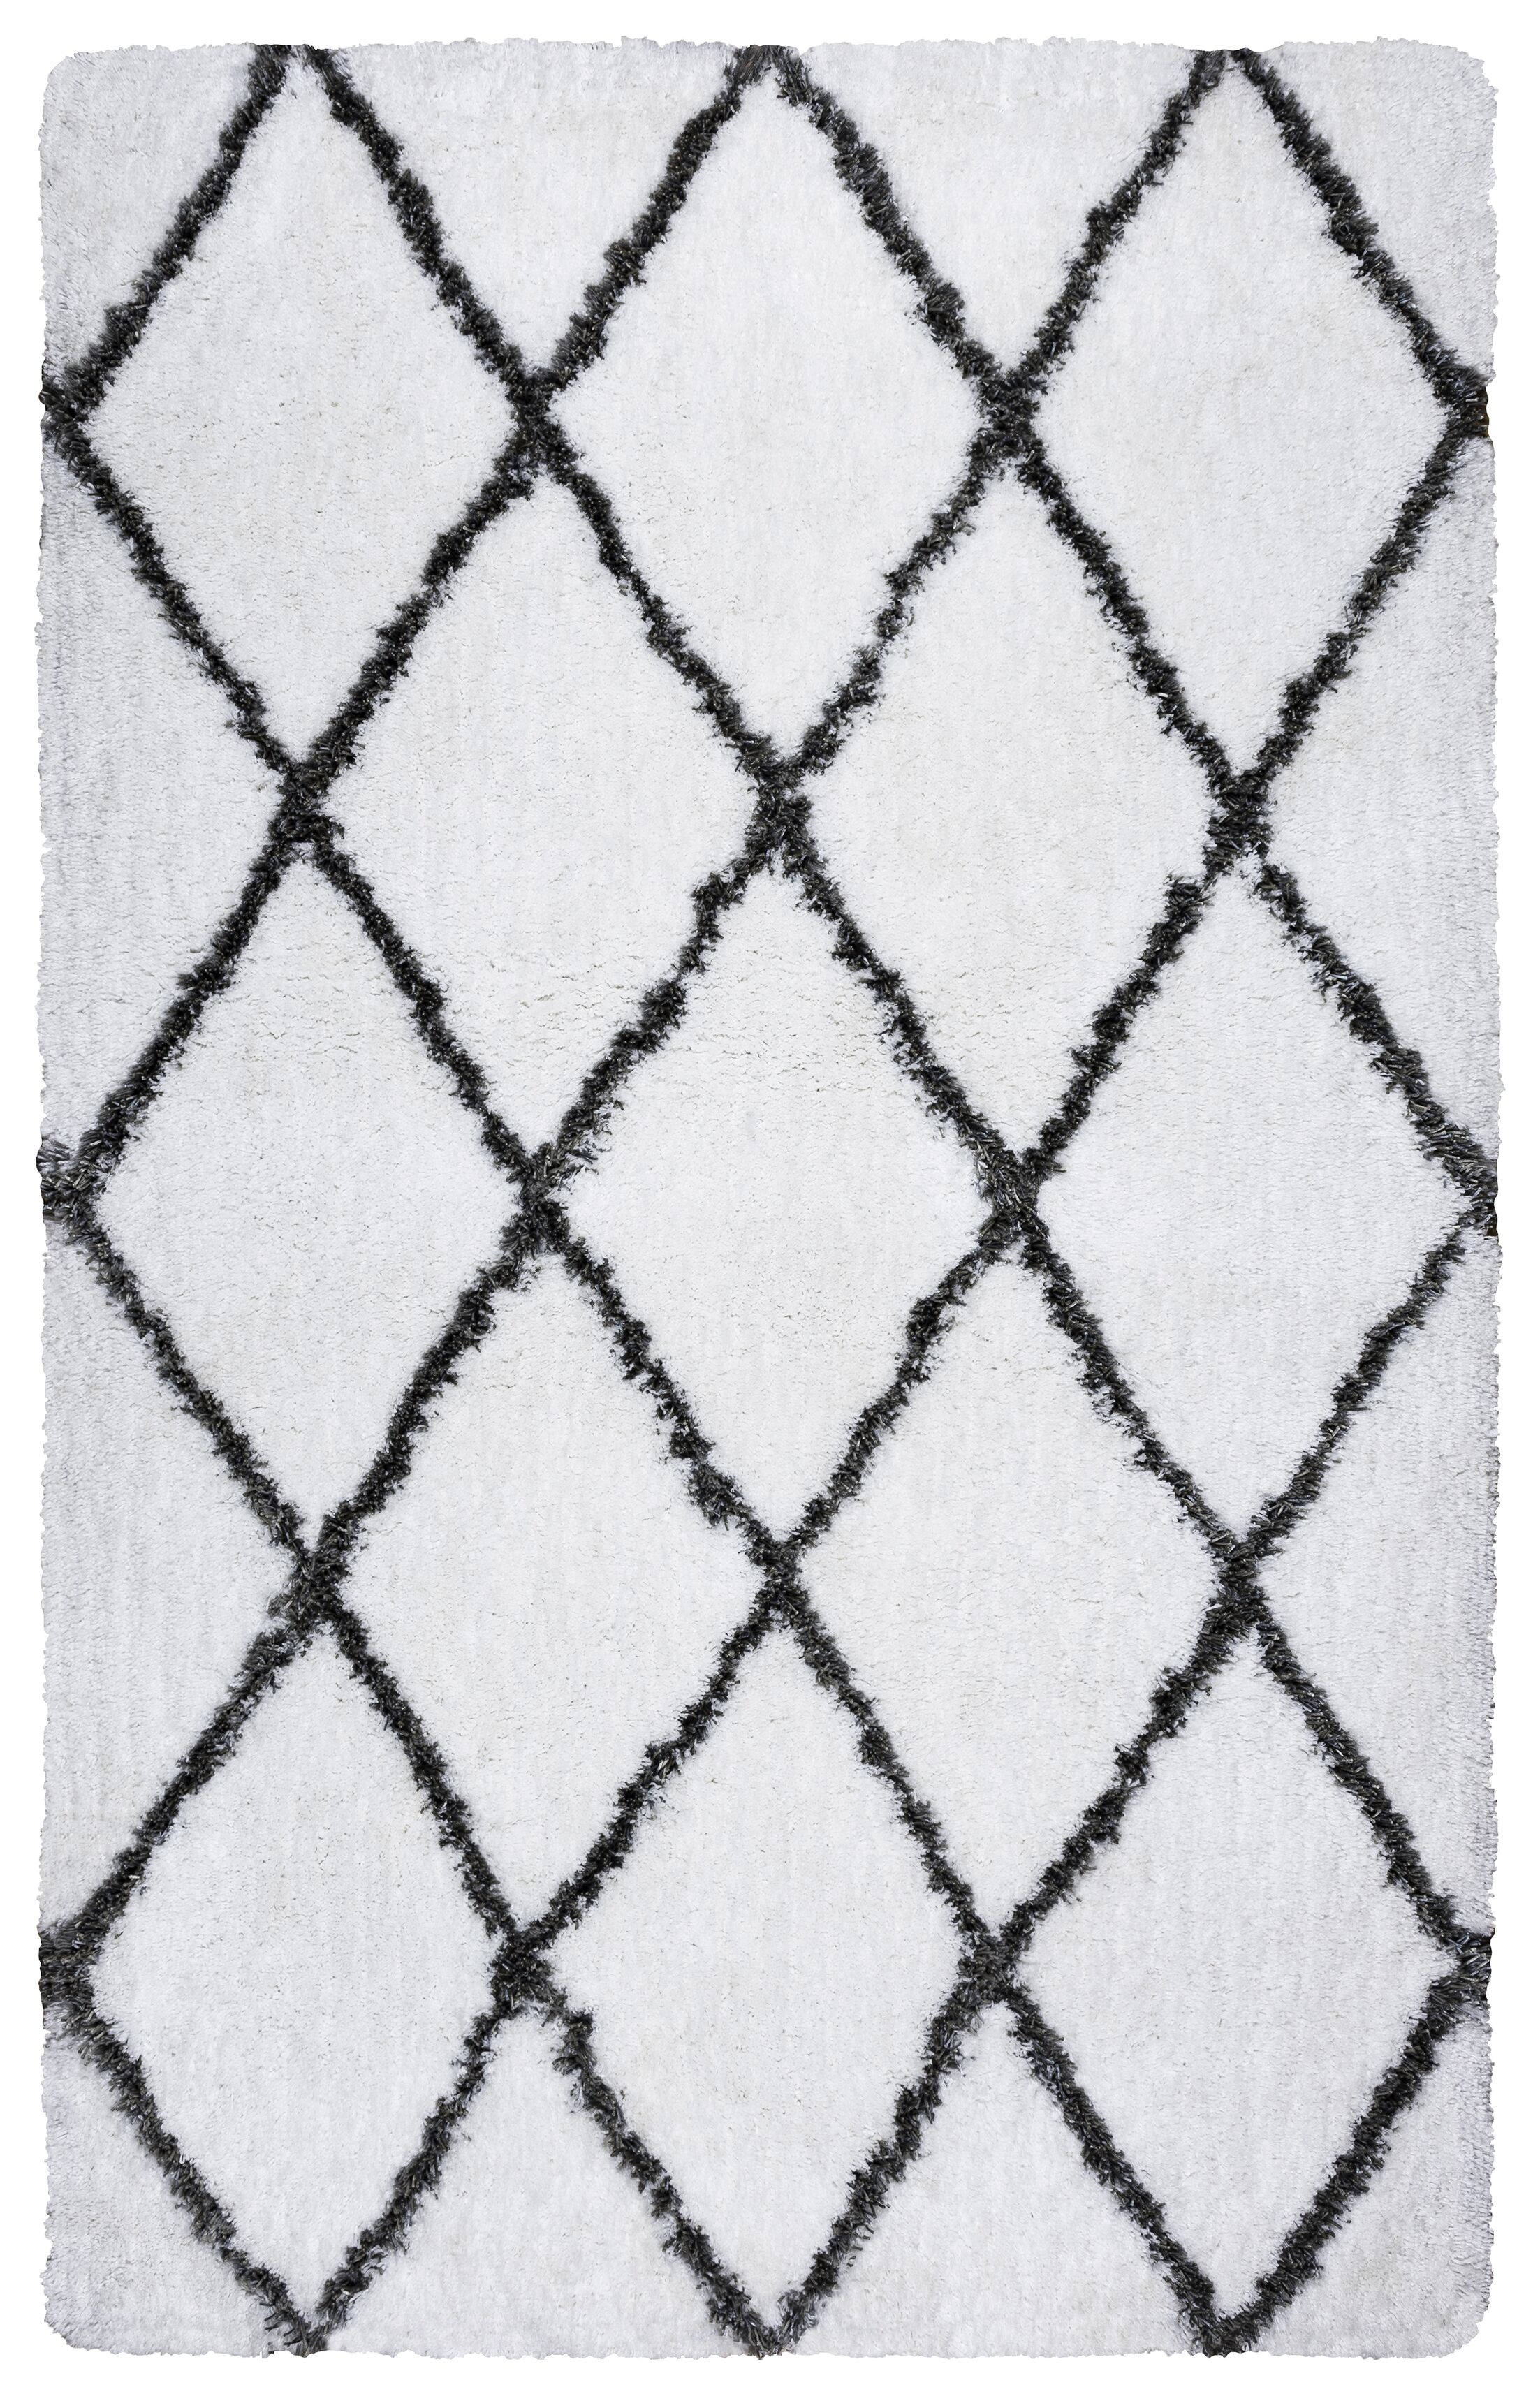 Beesley Hand-Tufted Bright White/Gray Indoor/Outdoor Area Rug Size: Rectangle 9' x 12'